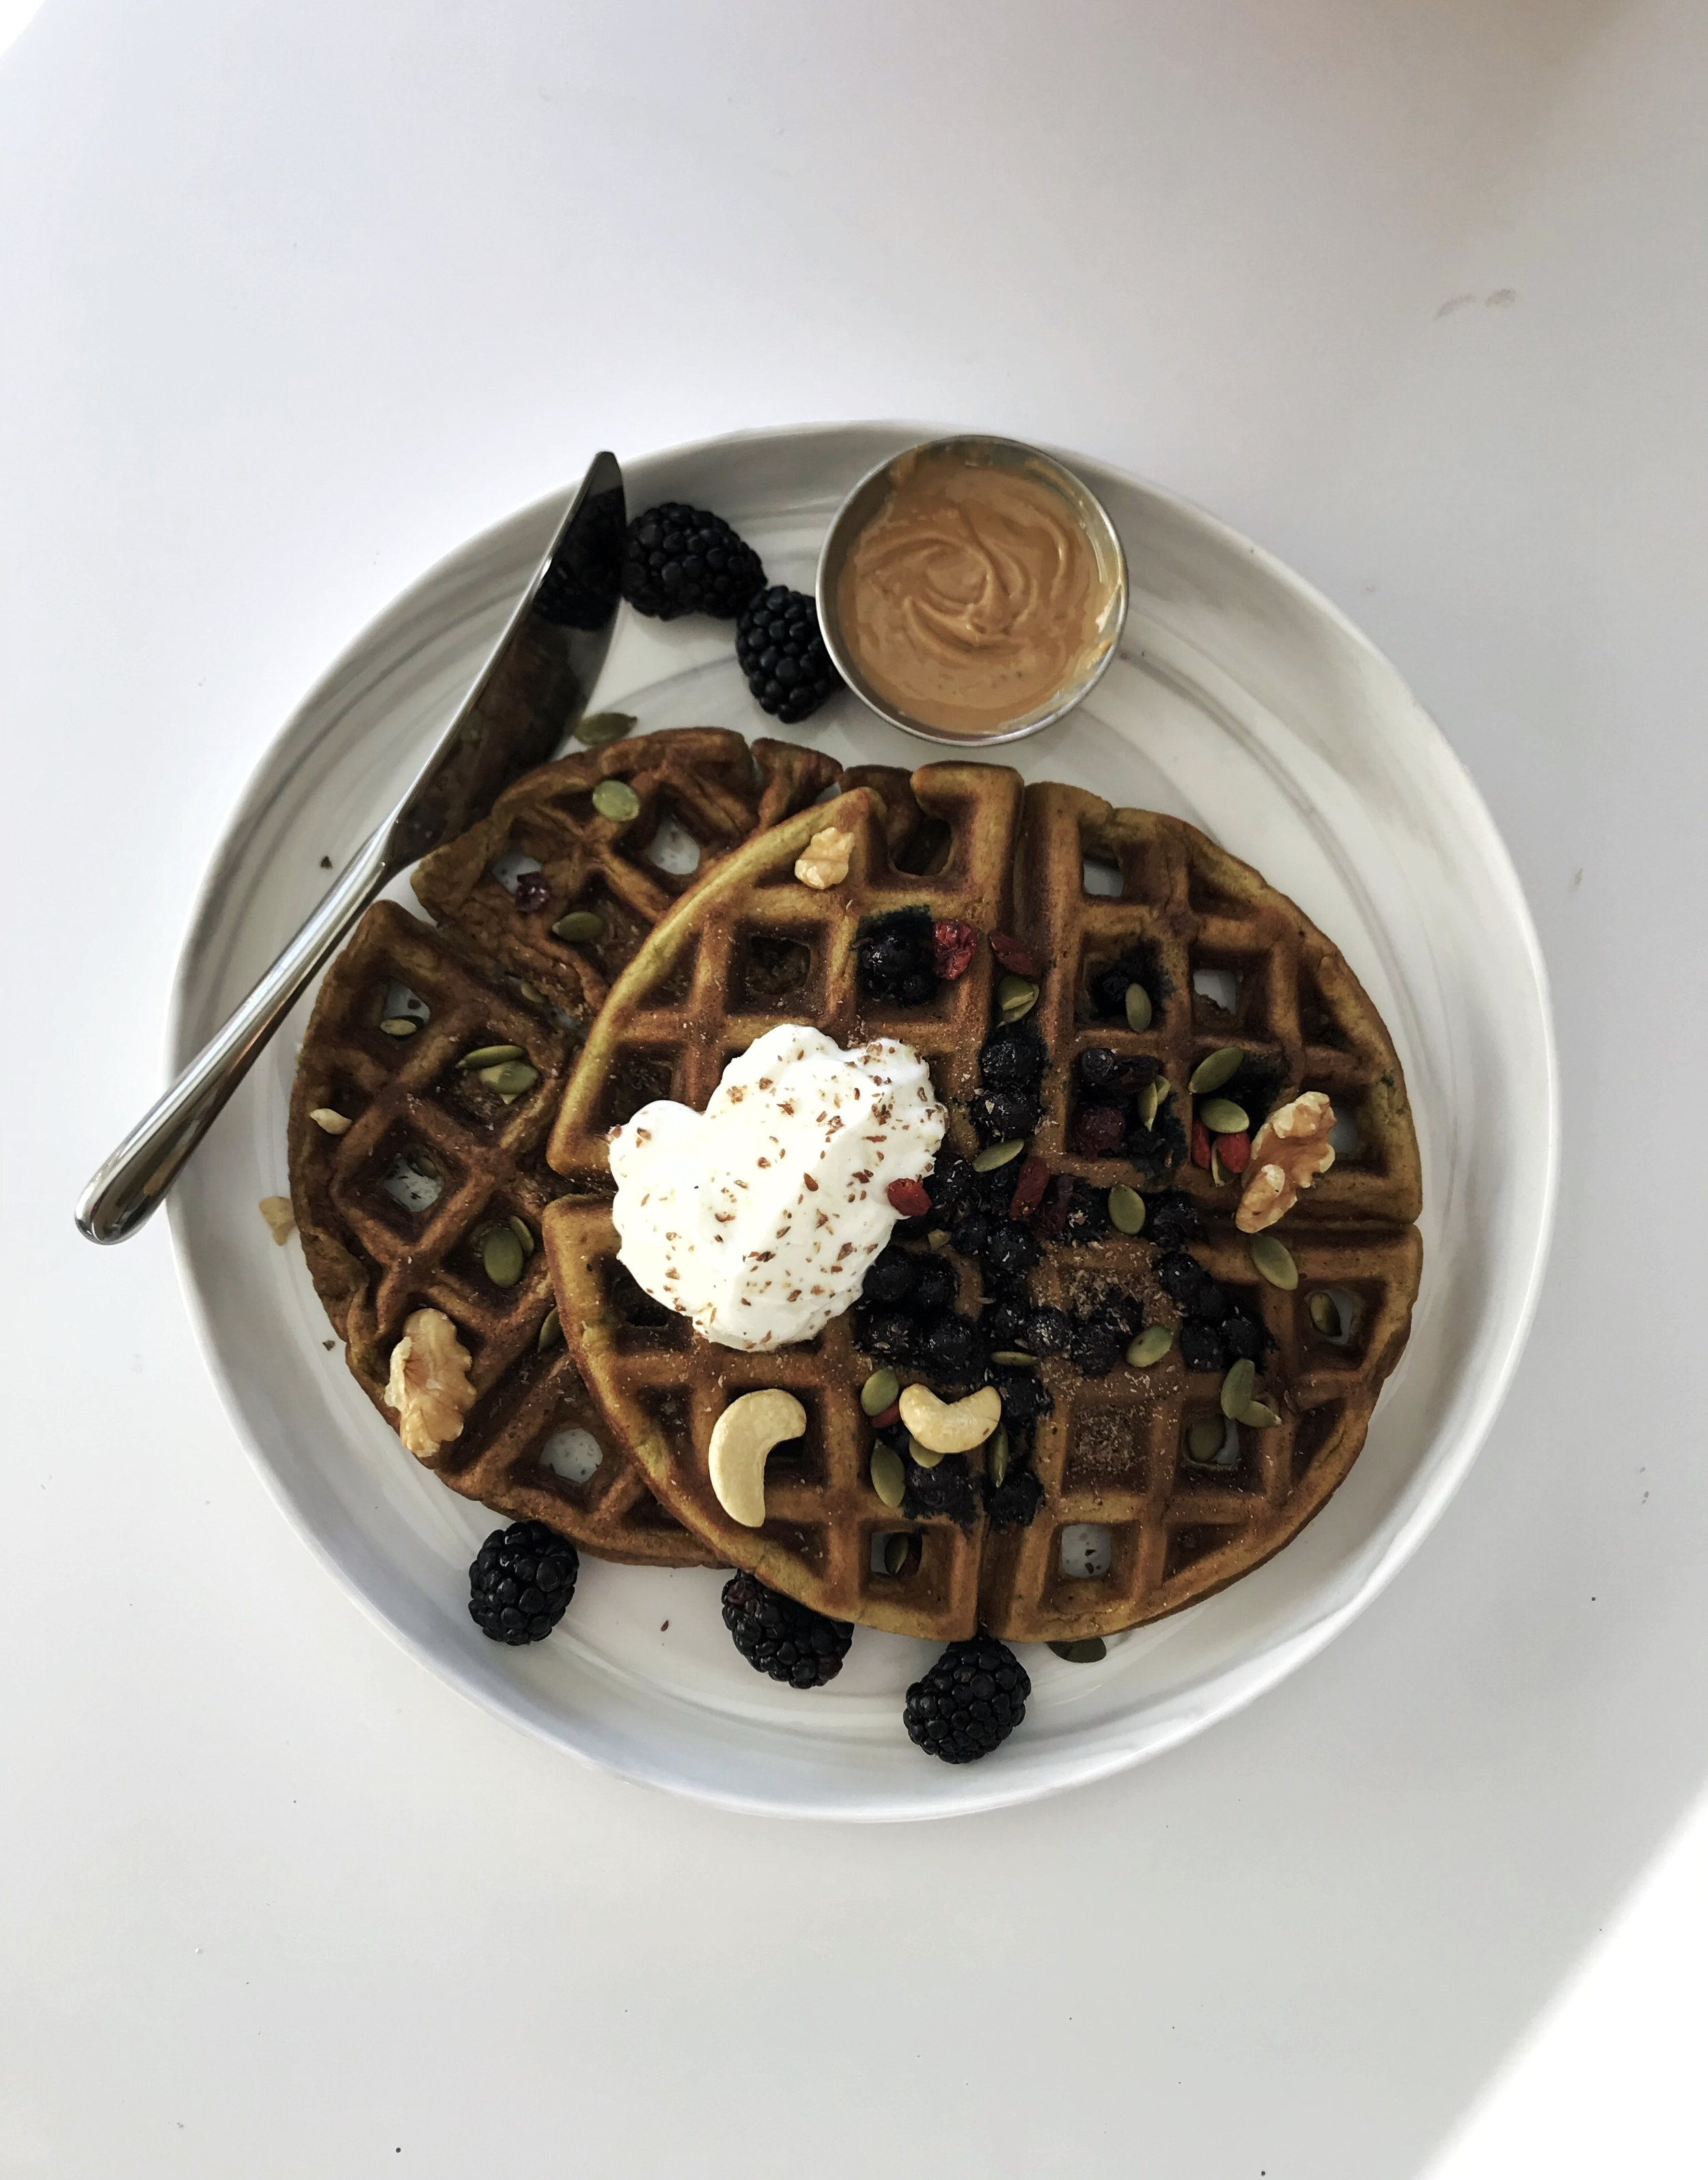 Bountiful Winter Waffles -  Makes 4 circular waffles, or 8 (ish) pancakes1/2 cup stone ground whole wheat flour1 tsp baking soda1/4 tsp salt2 eggs1 tbsp honey2 tbsp chia seeds2 tbsp Greek yoghurt1/2 cup almond milk2 tsp moringa powder (optional)Handful frozen berries